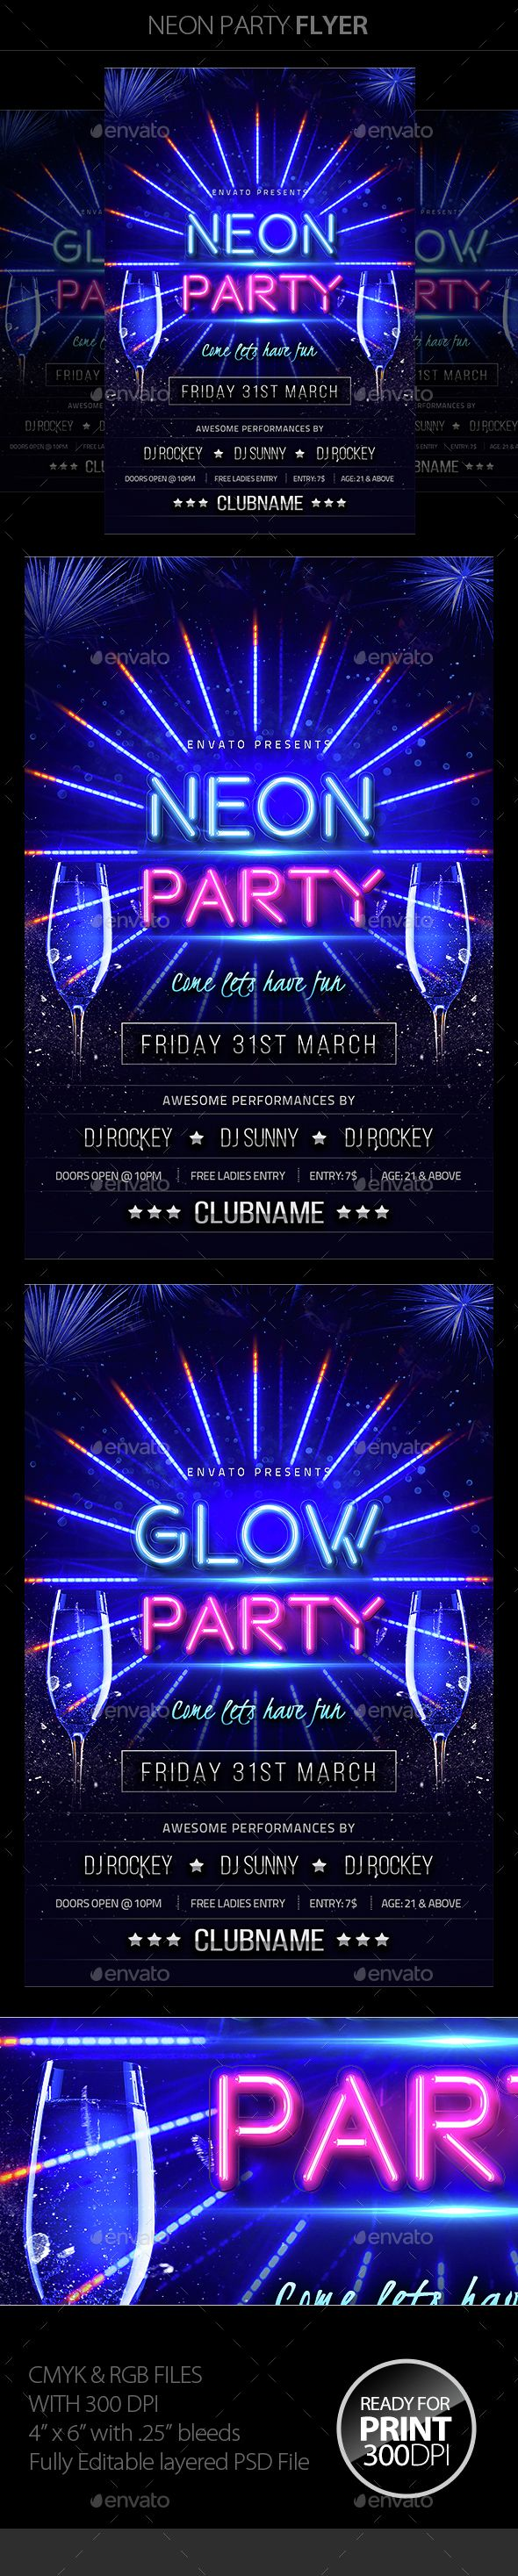 Neon Party Flyer Template PSD. Download here: http://graphicriver.net/item/neon-party-flyer/14993126?ref=ksioks